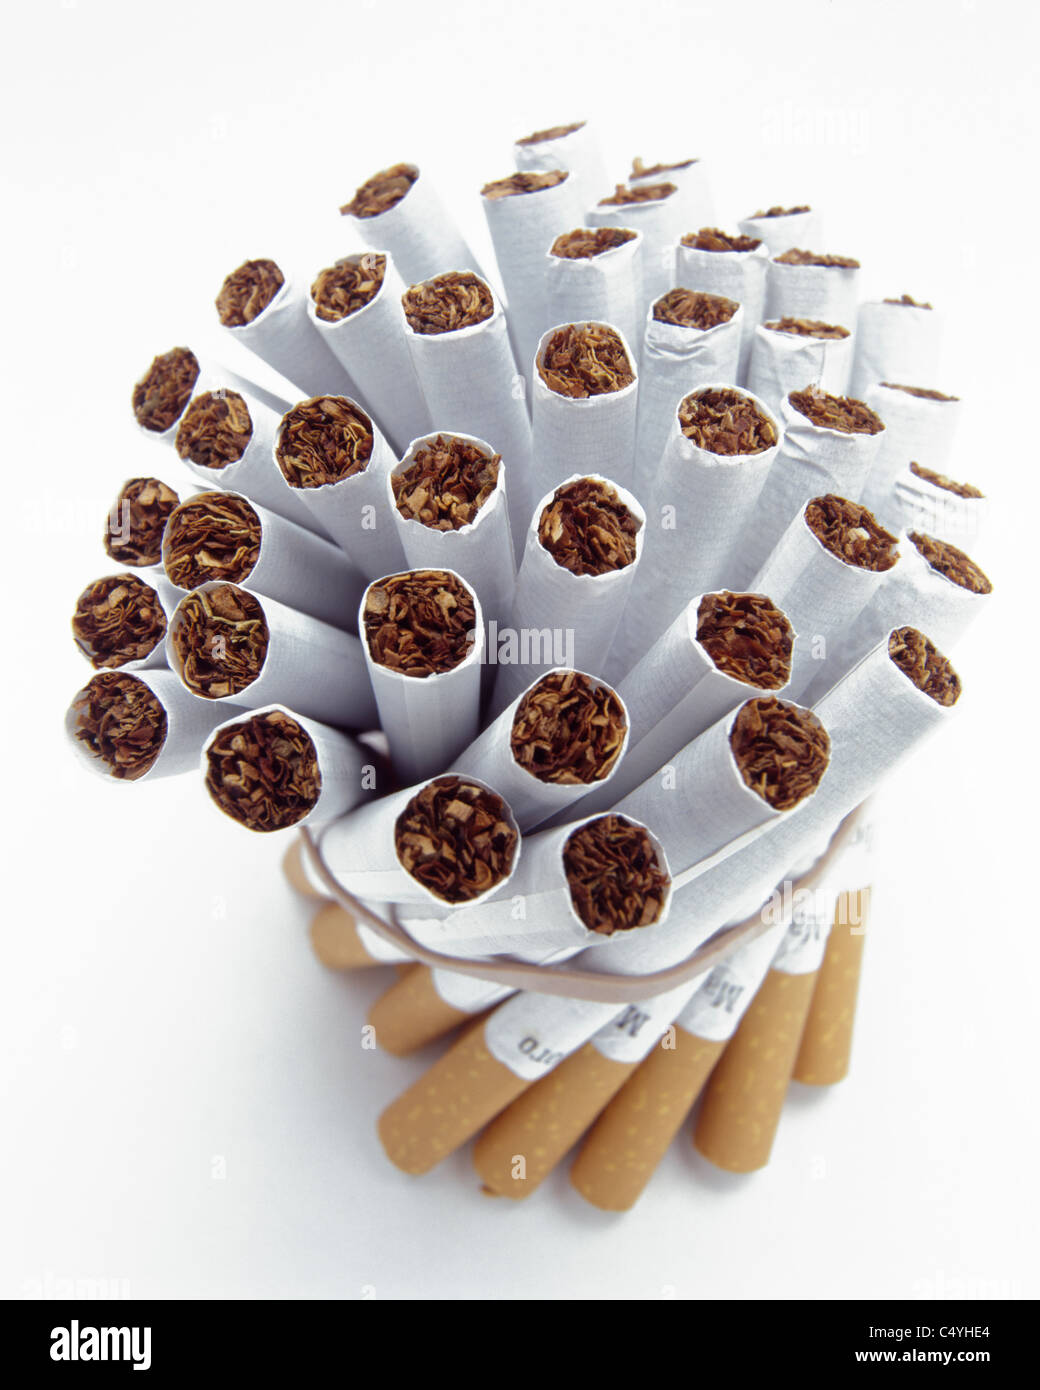 A bundle of brand new tobacco cigarettes - Stock Image